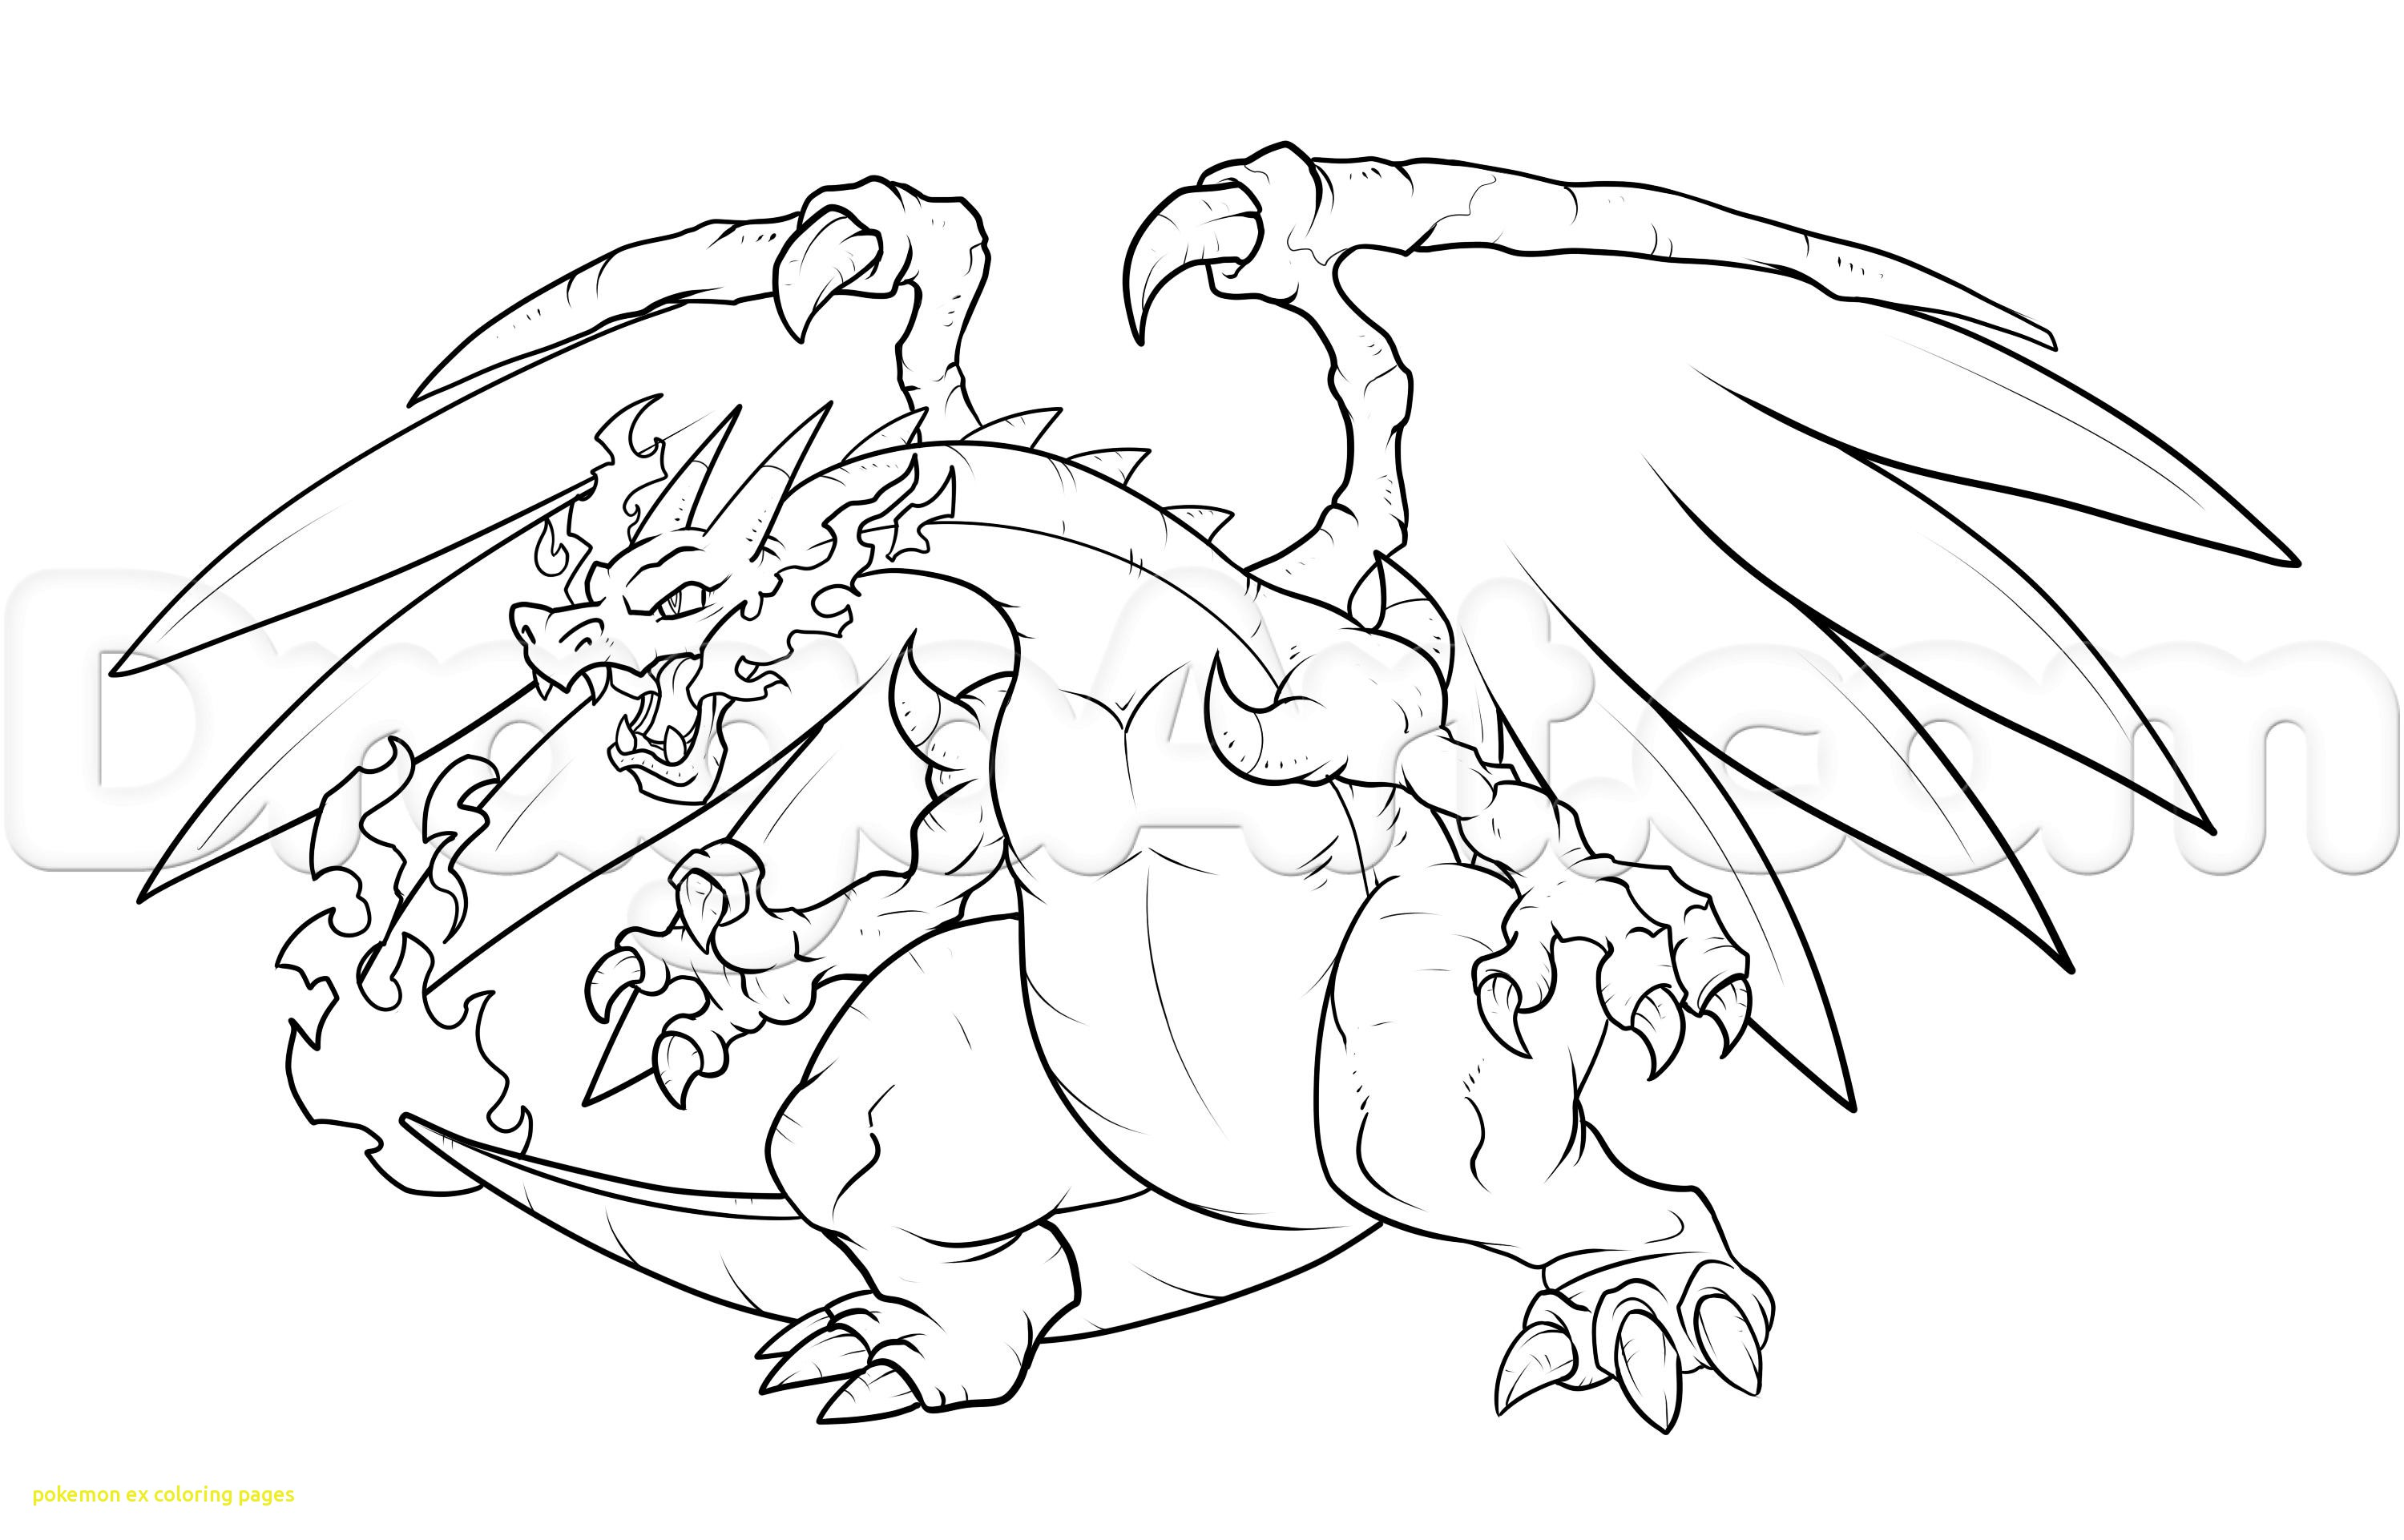 3000x1922 Coloring Pages Pokemon Groudon Inspiration Pokemon Ex Coloring